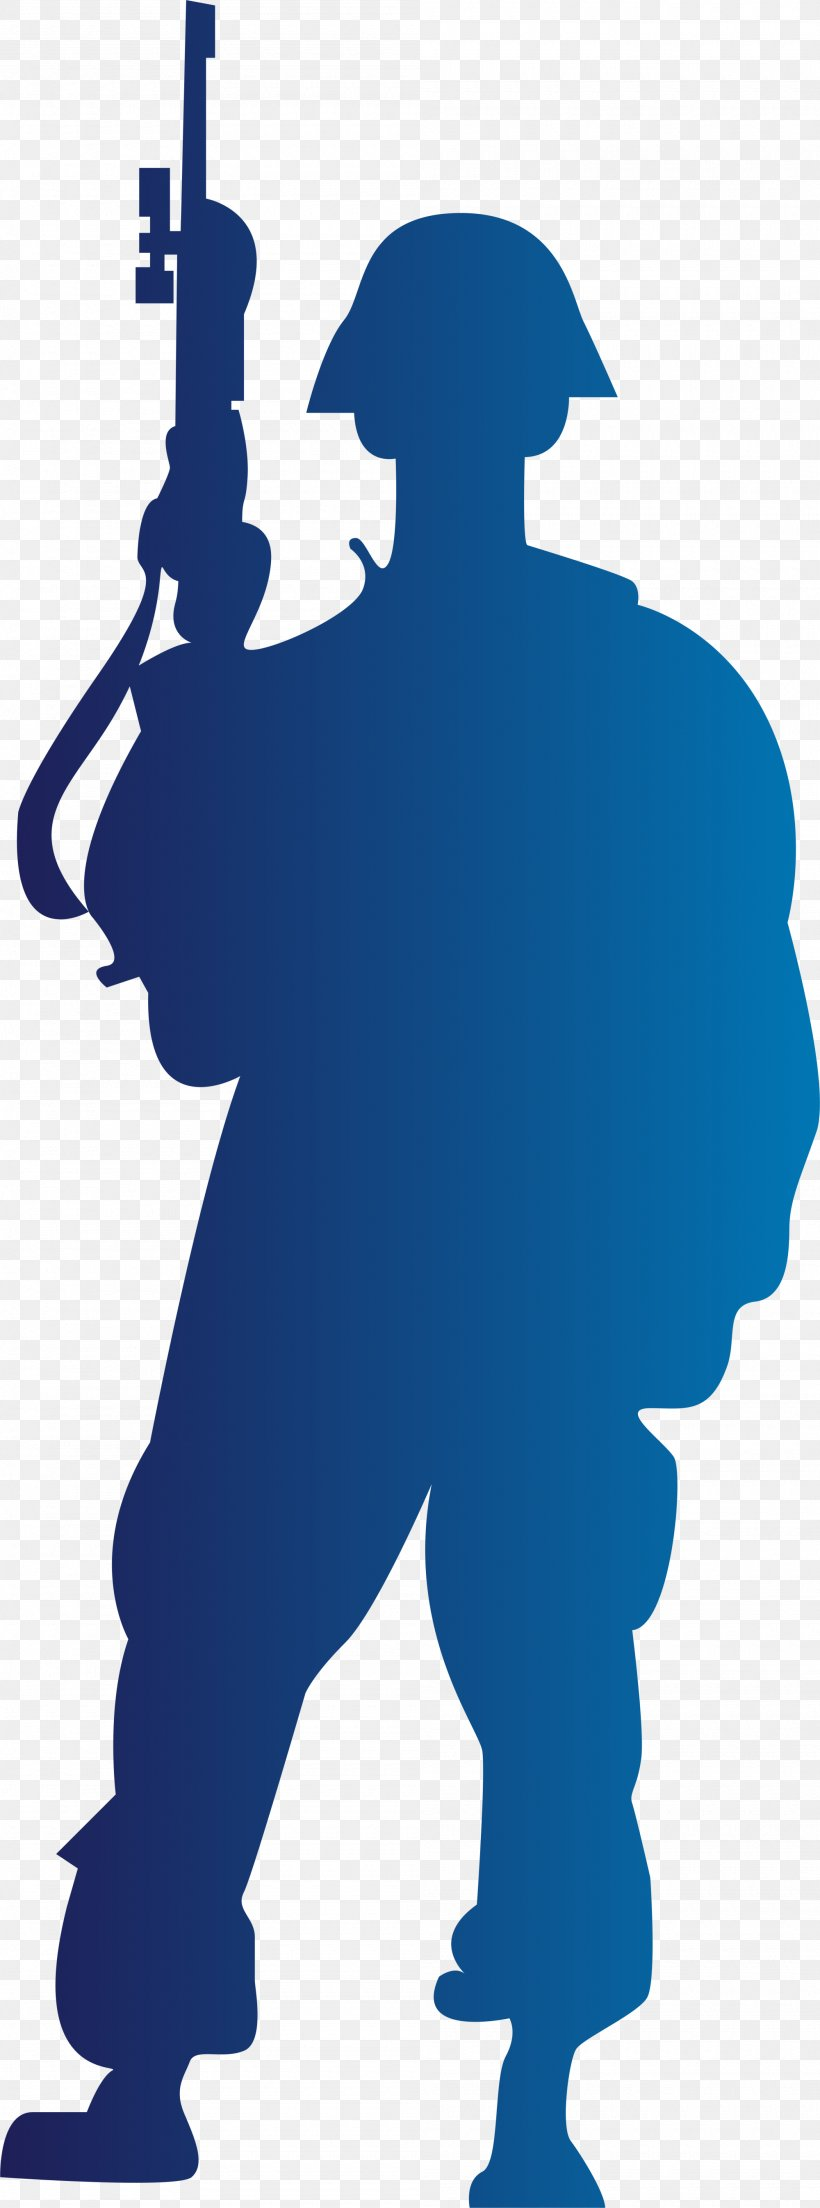 Soldier Royalty-free Silhouette Stock Illustration, PNG, 2000x5386px, Soldier, Army, Black And White, Drawing, Fictional Character Download Free